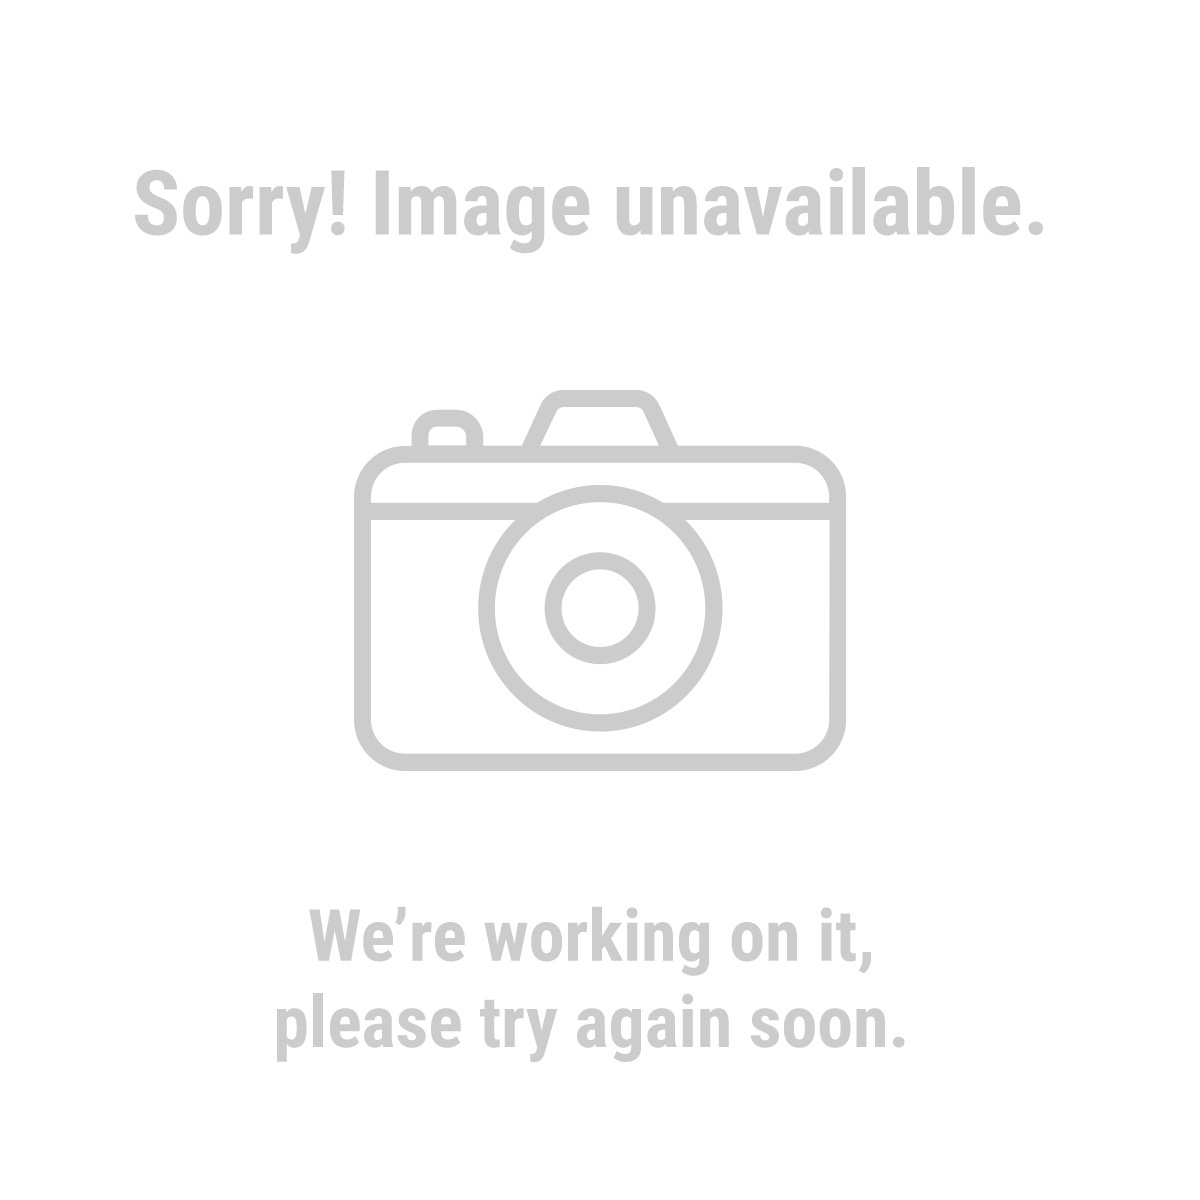 Lifetime Carbide 90312 Pack of 6 Medium Grade Aluminum Oxide Sanding Sponges with Beveled Edge